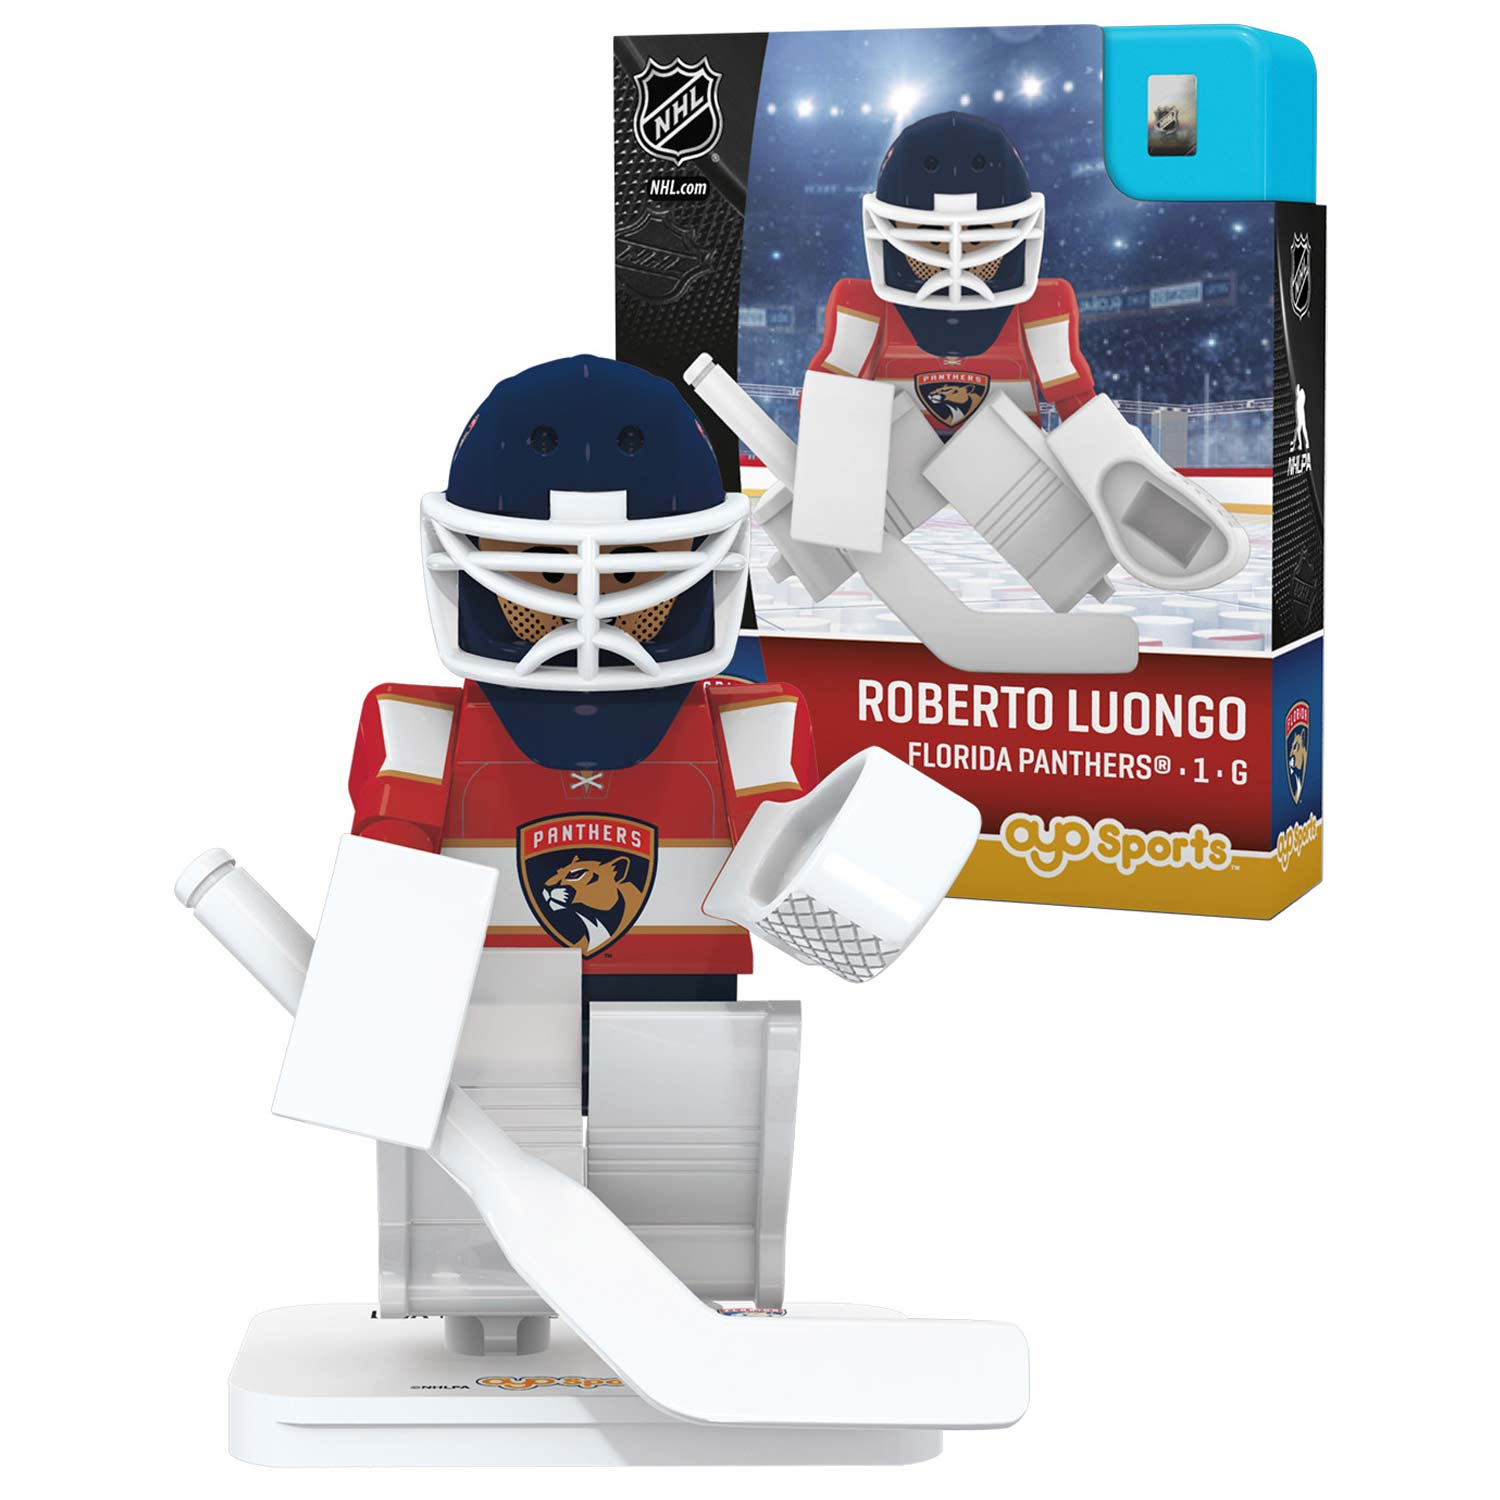 Roberto Luongo Florida Panthers OYO Sports Player Figurine - No Size